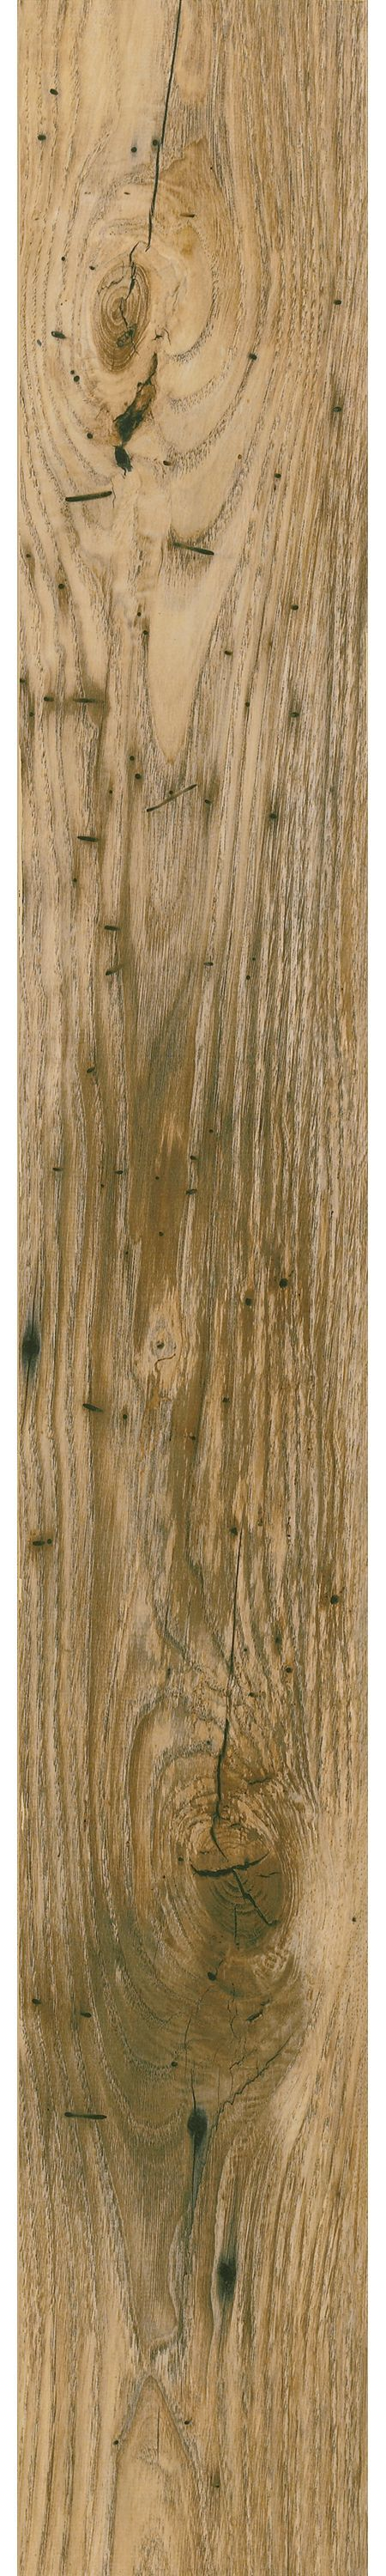 """Armstrong Reclaimed American Chestnut Aged Chestnut L6604, 12mm Laminate Wood Look, Low Gloss, 6.49""""x47.83"""", Install Method:  Lock & Fold"""